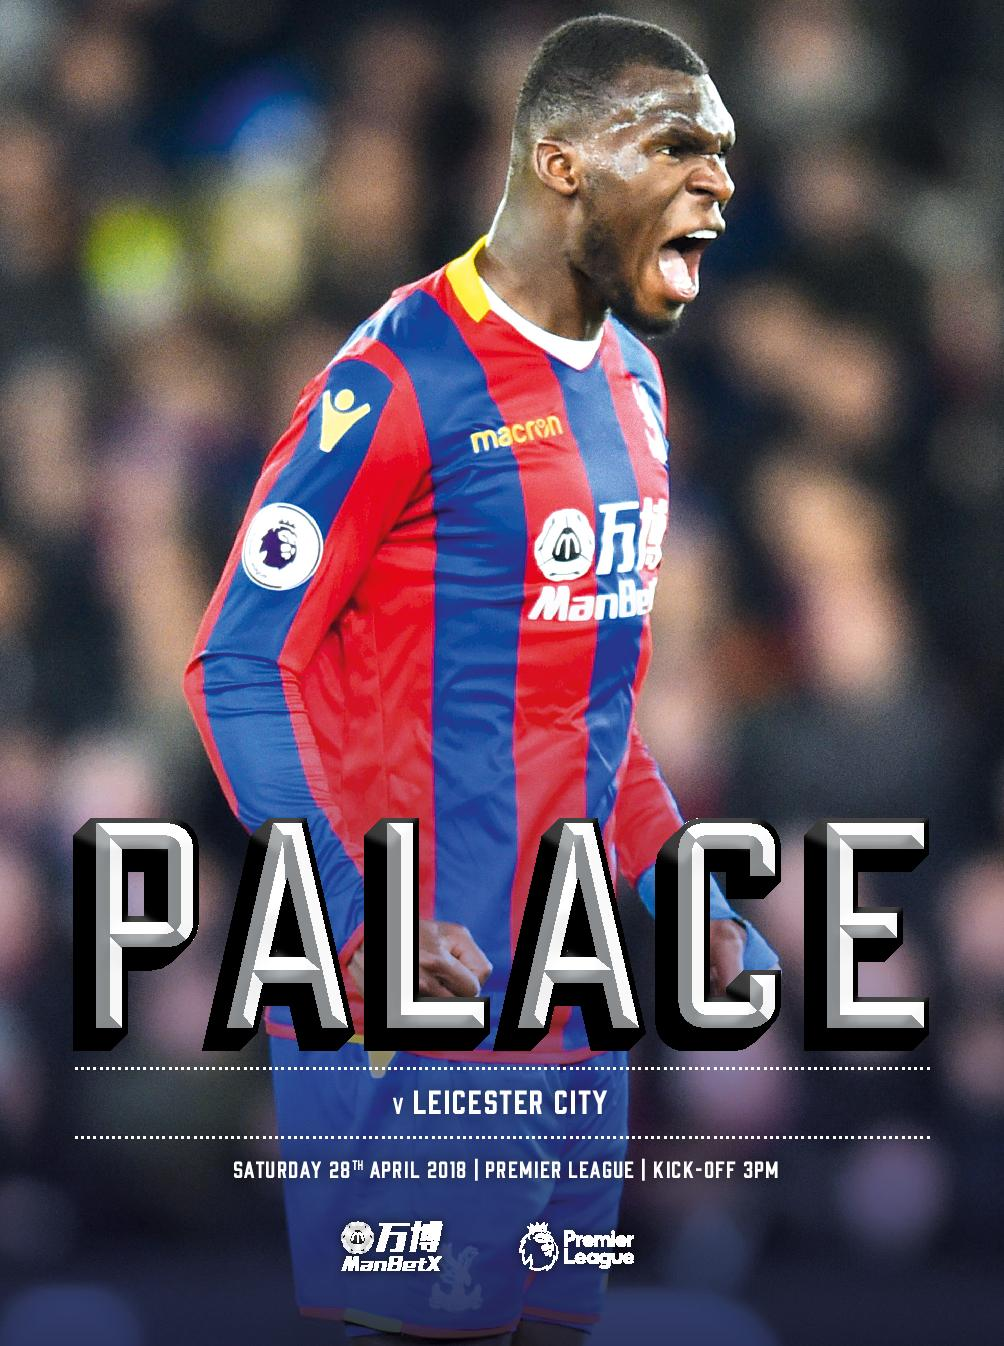 CRYSTAL PALACE v LEICESTER CITY 2017/18